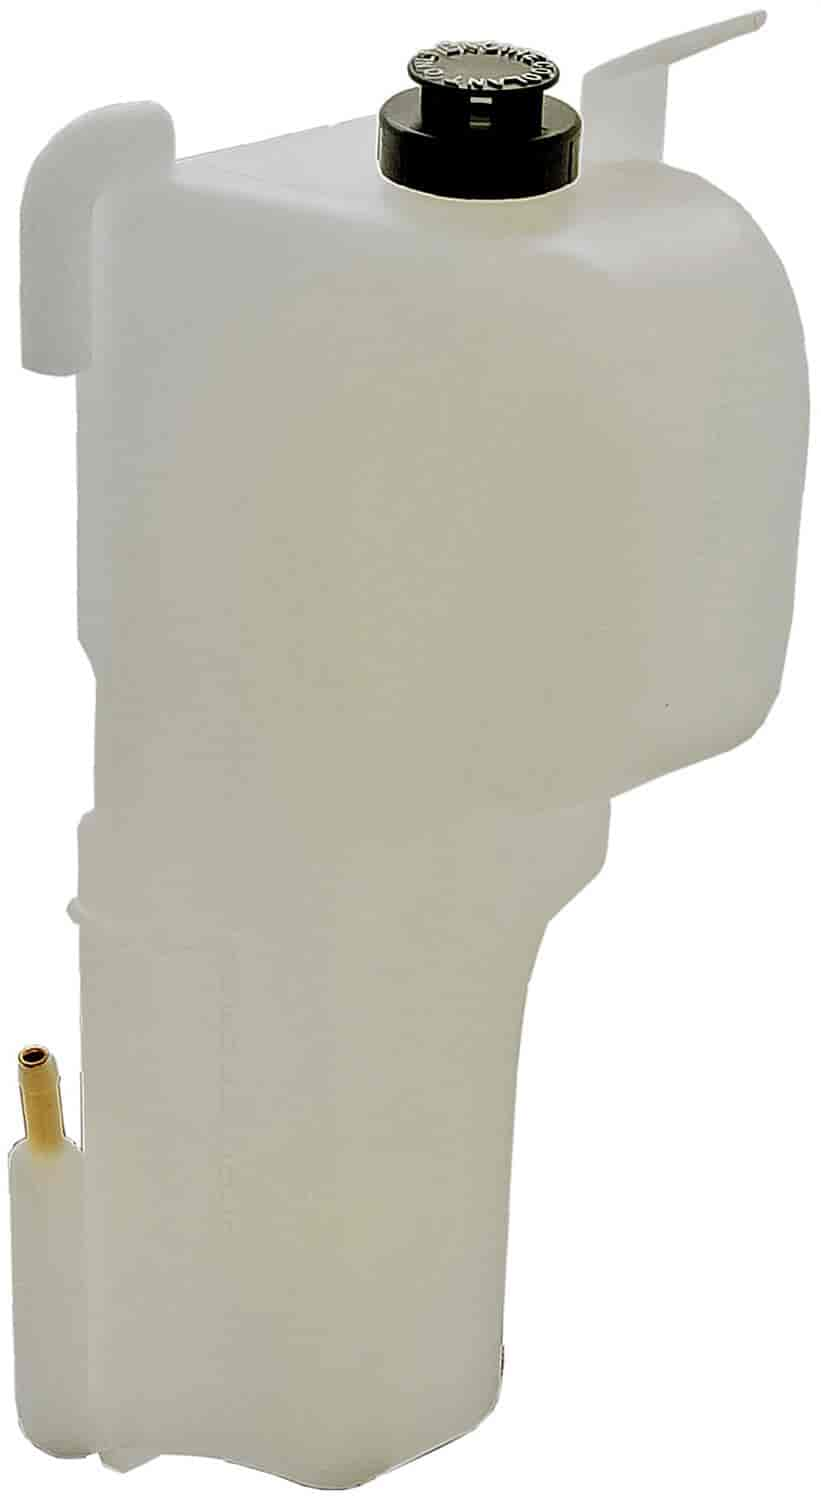 Dorman Products 603-101 - Dorman Fluid Reservoirs/Caps